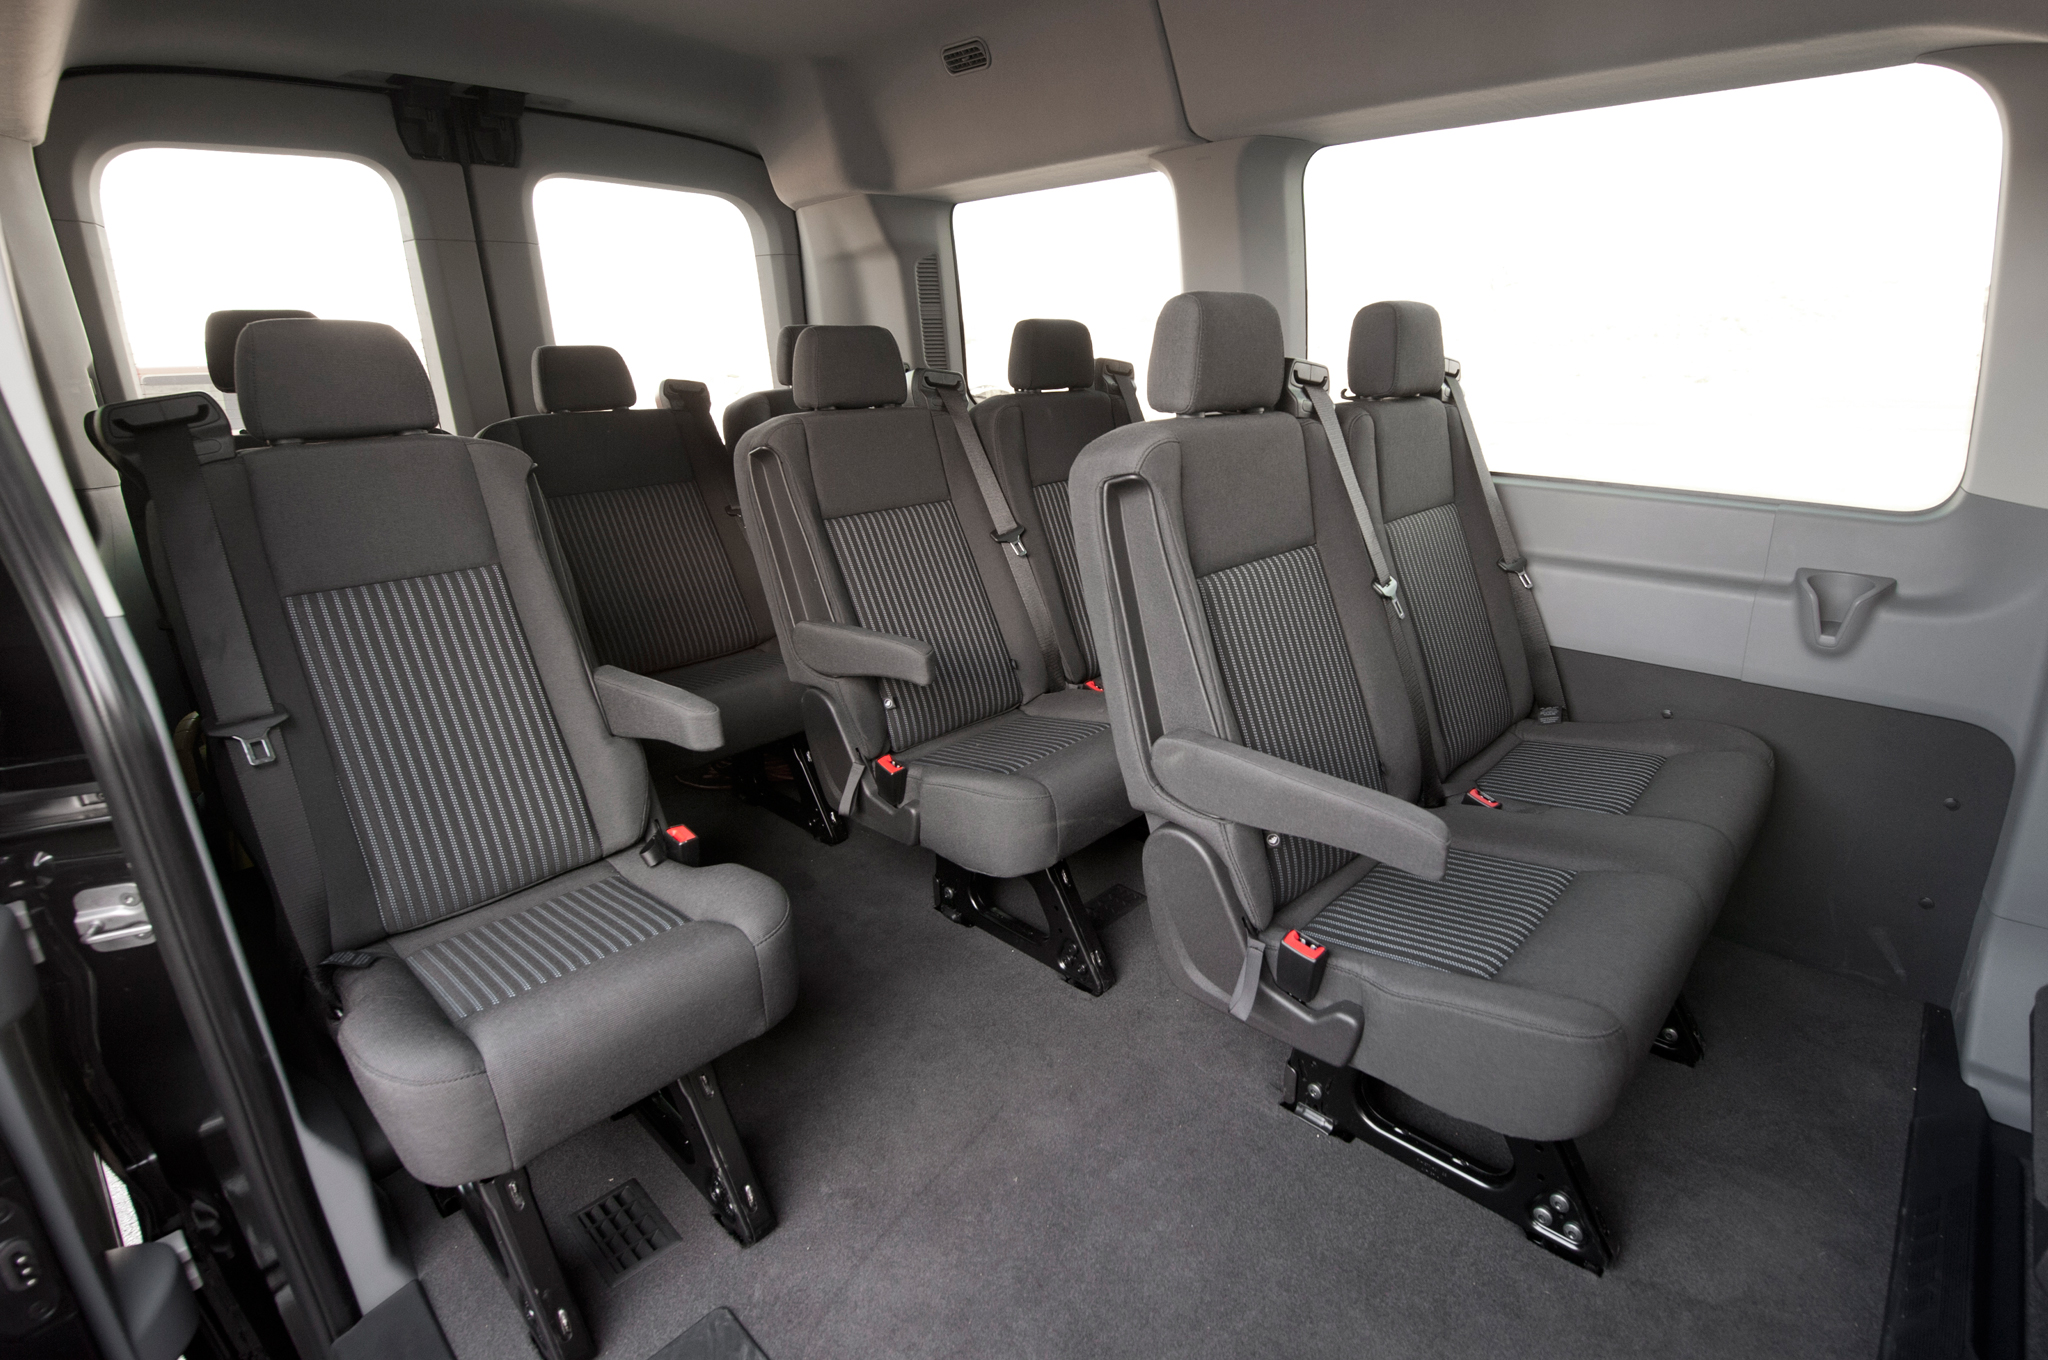 2015 Ford Transit 150 Seats Interior